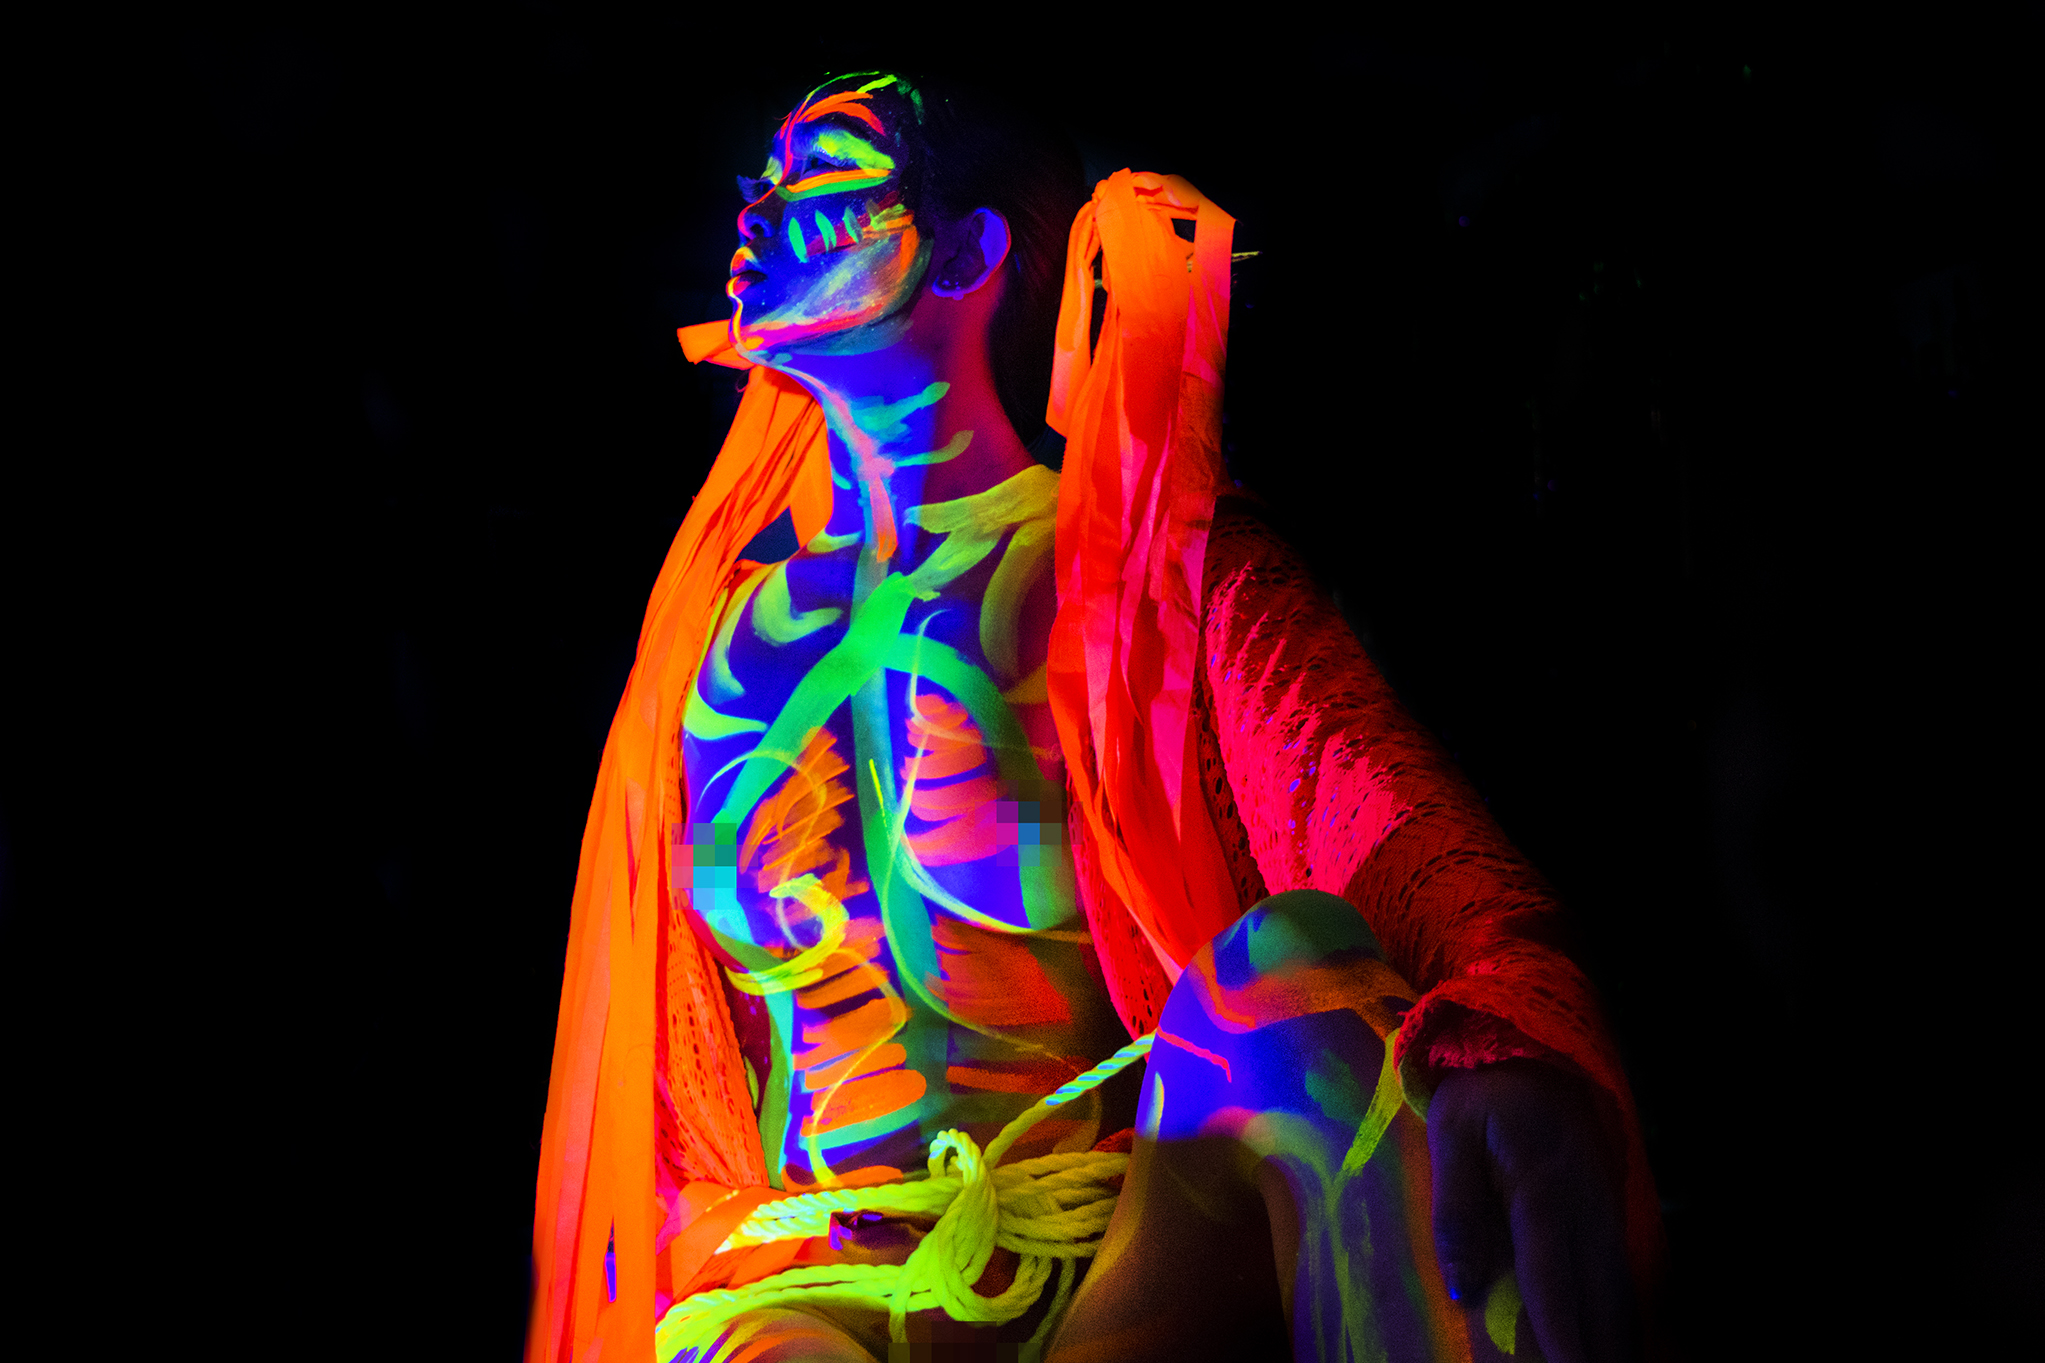 Michelle modelling for Neon Naked.